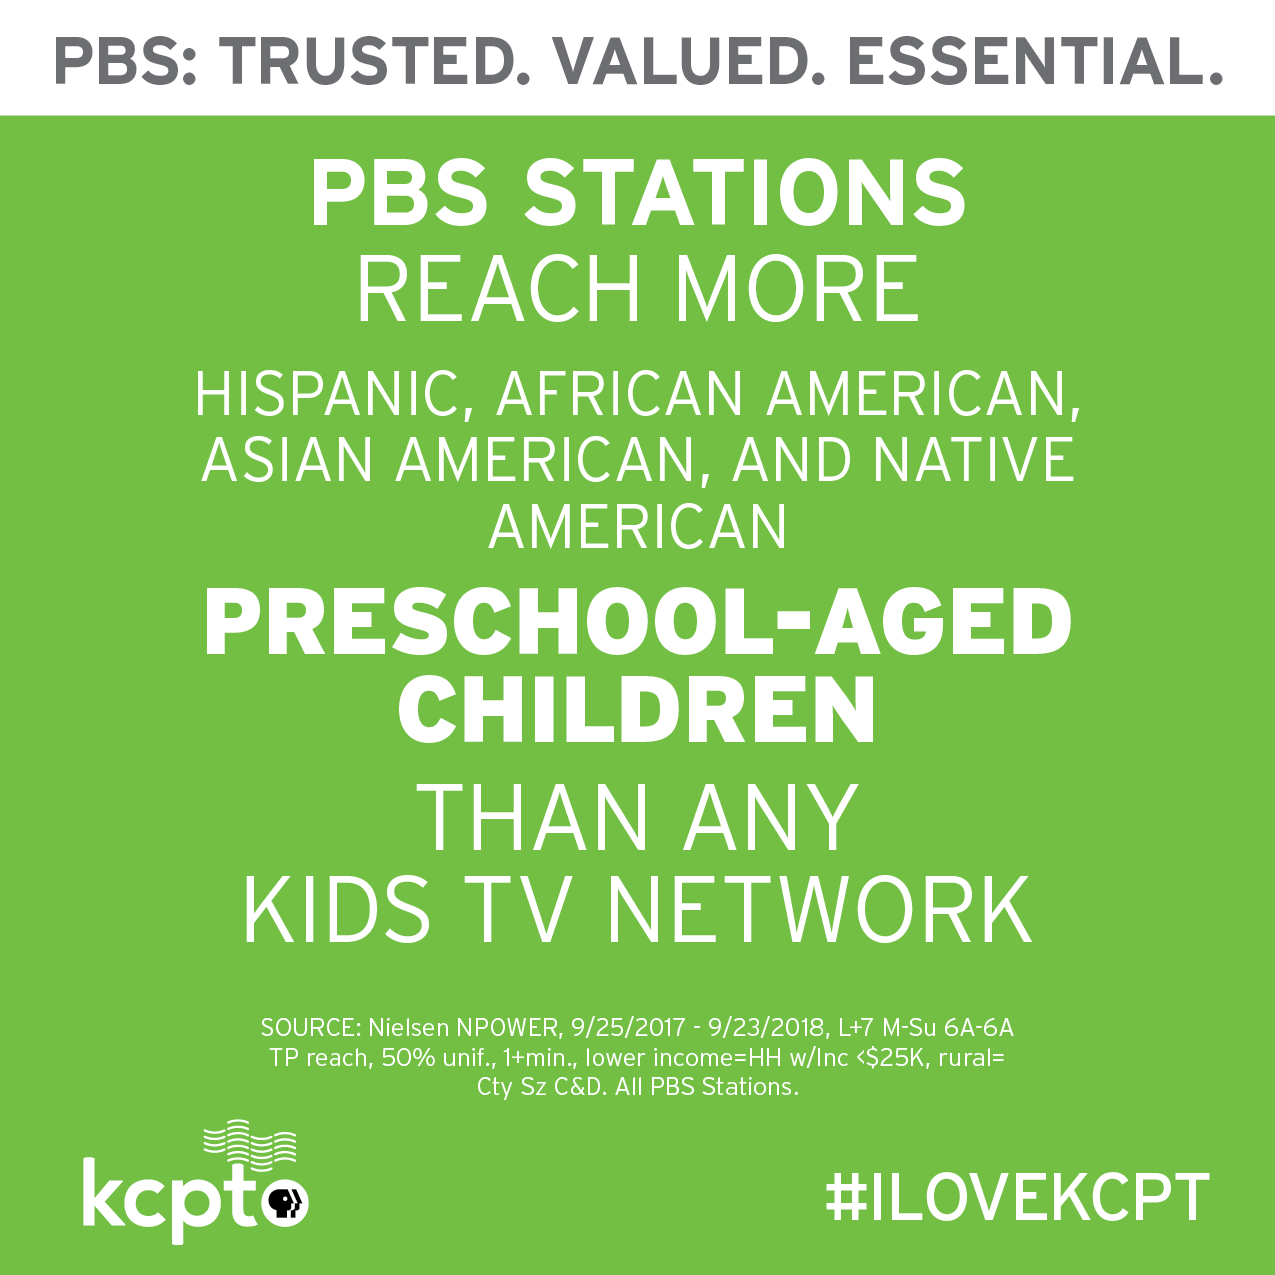 PBS Kids reaches more Hispanic, African American, Asian American, and Native American preschool-aged children than any other kids network.